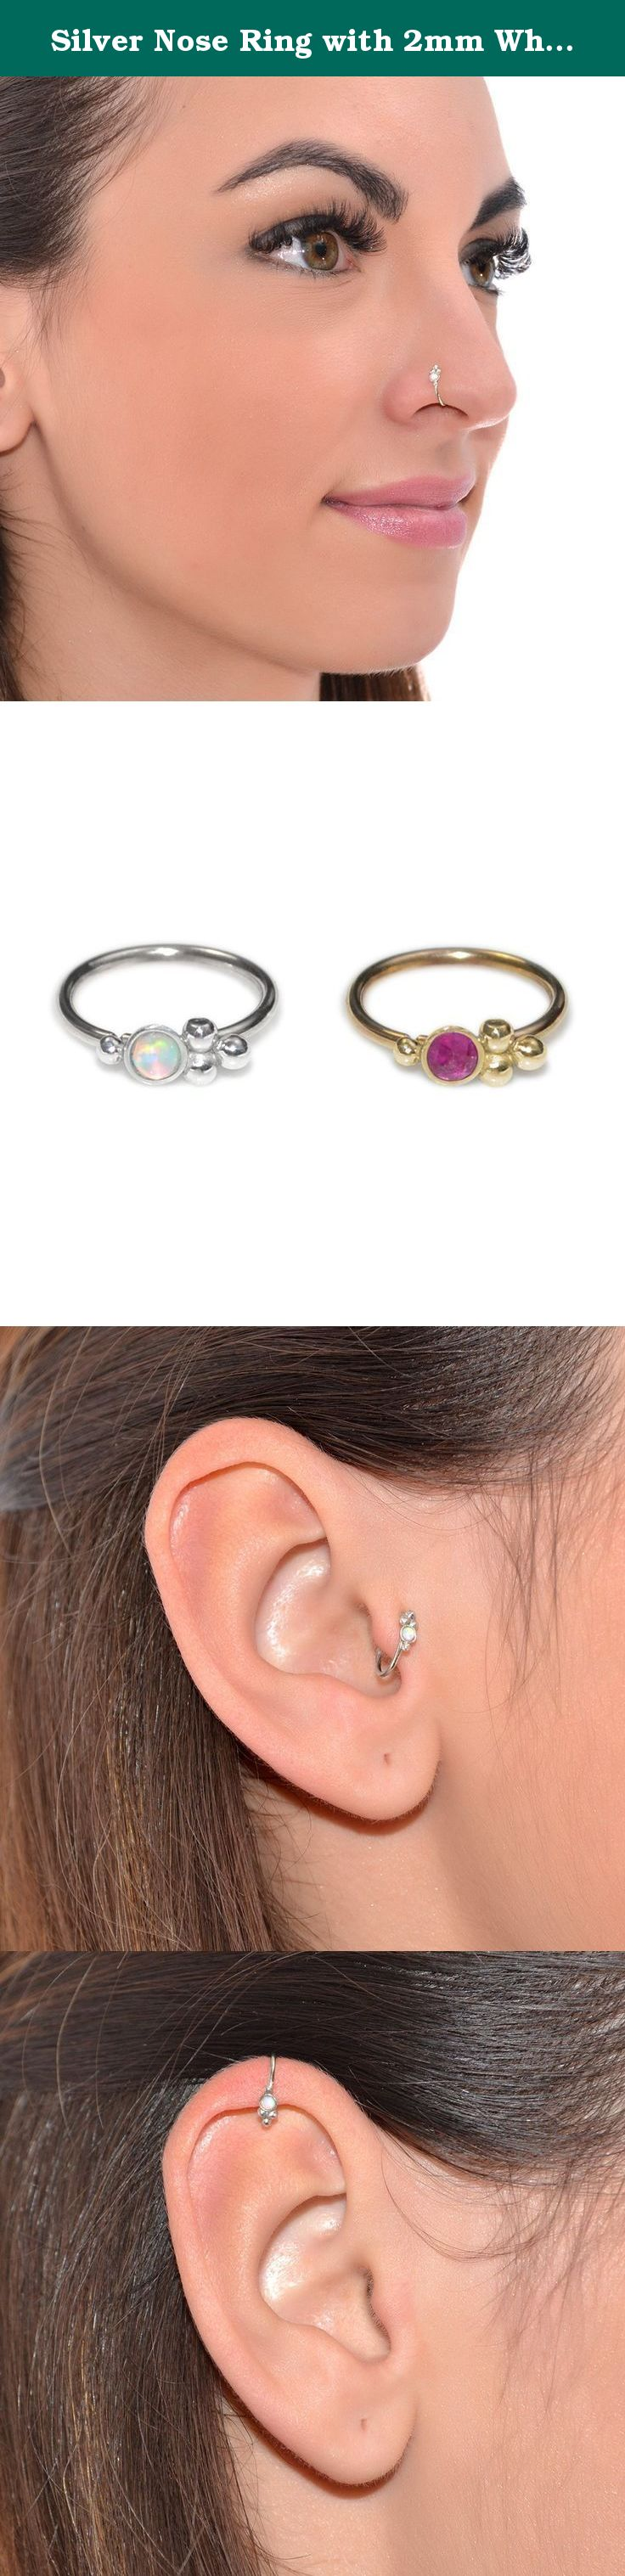 Nose piercing over 40  Silver Nose Ring with mm White Opal g  Daith Earring Rook